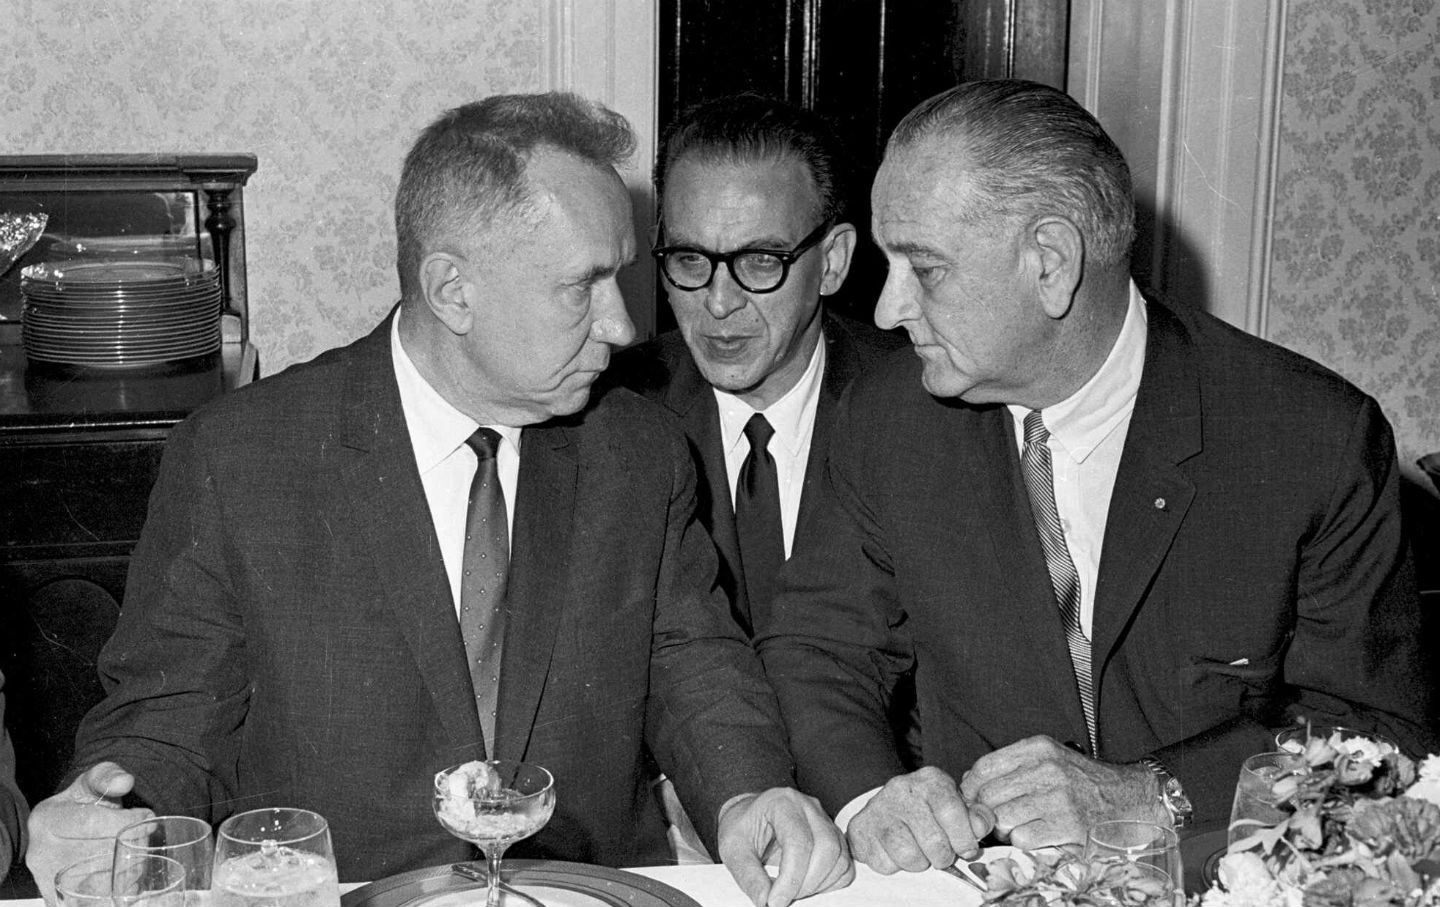 Soviet Premier Alexei N. Kosygin meets with President Lyndon Johnson